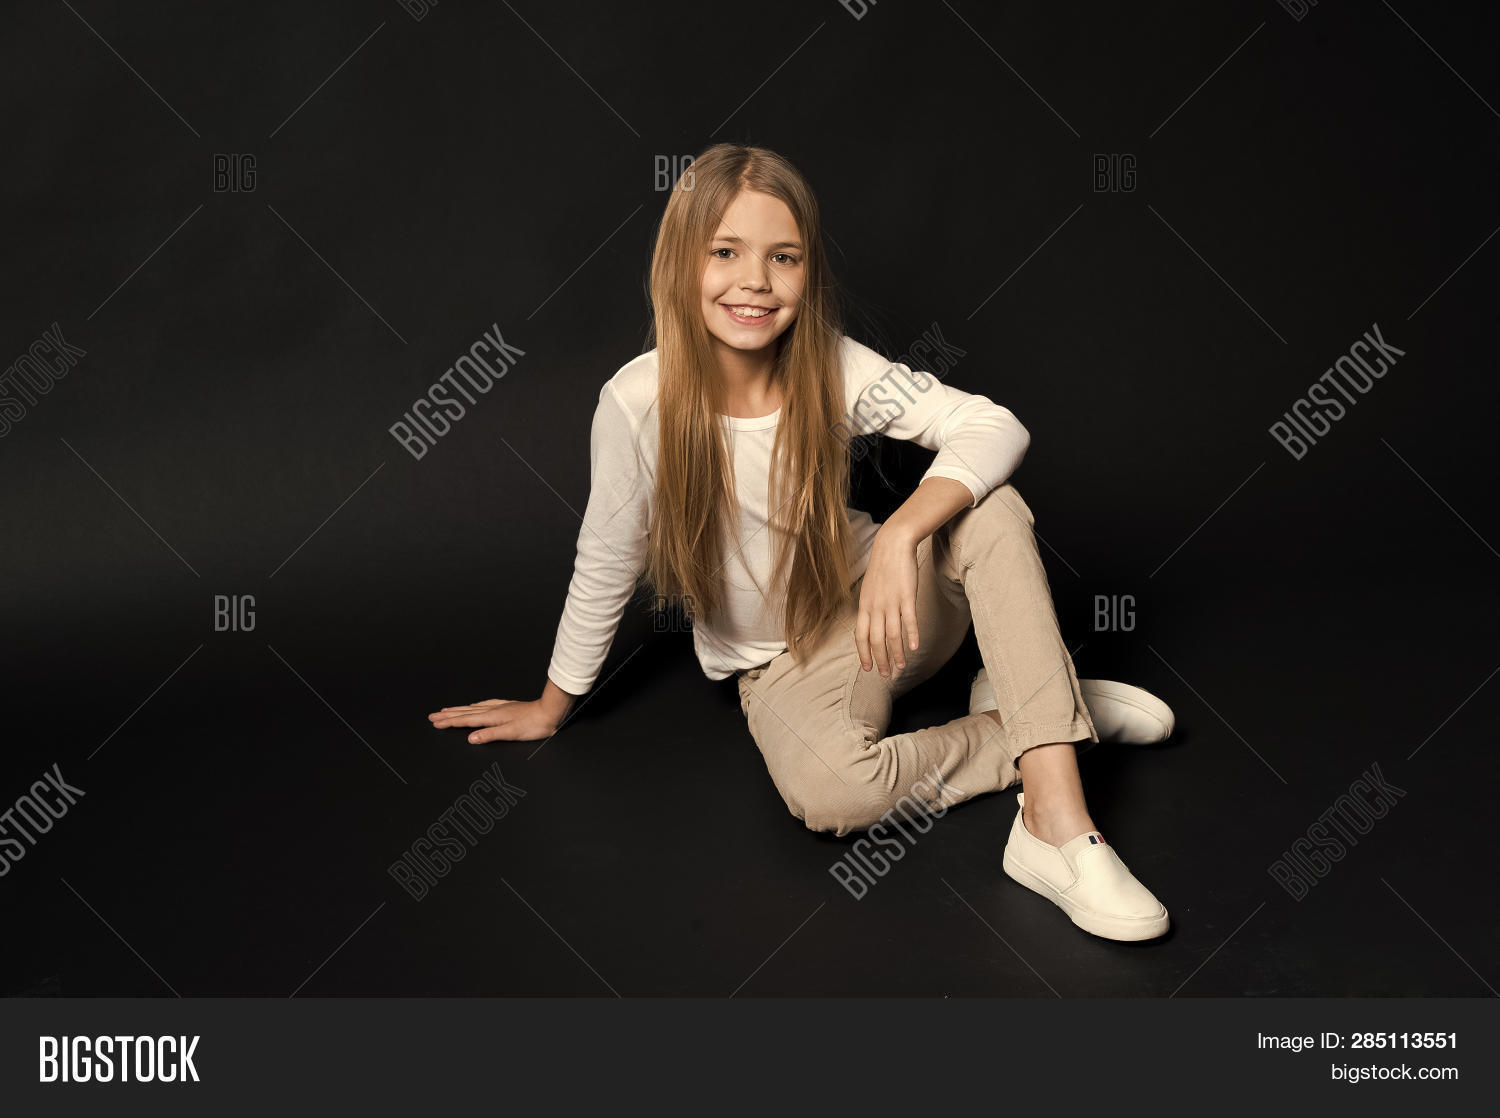 Carefree Childhood. Girl Long Hair Cute Smiling Face Relaxing, Black Background. Child Girl Carefree